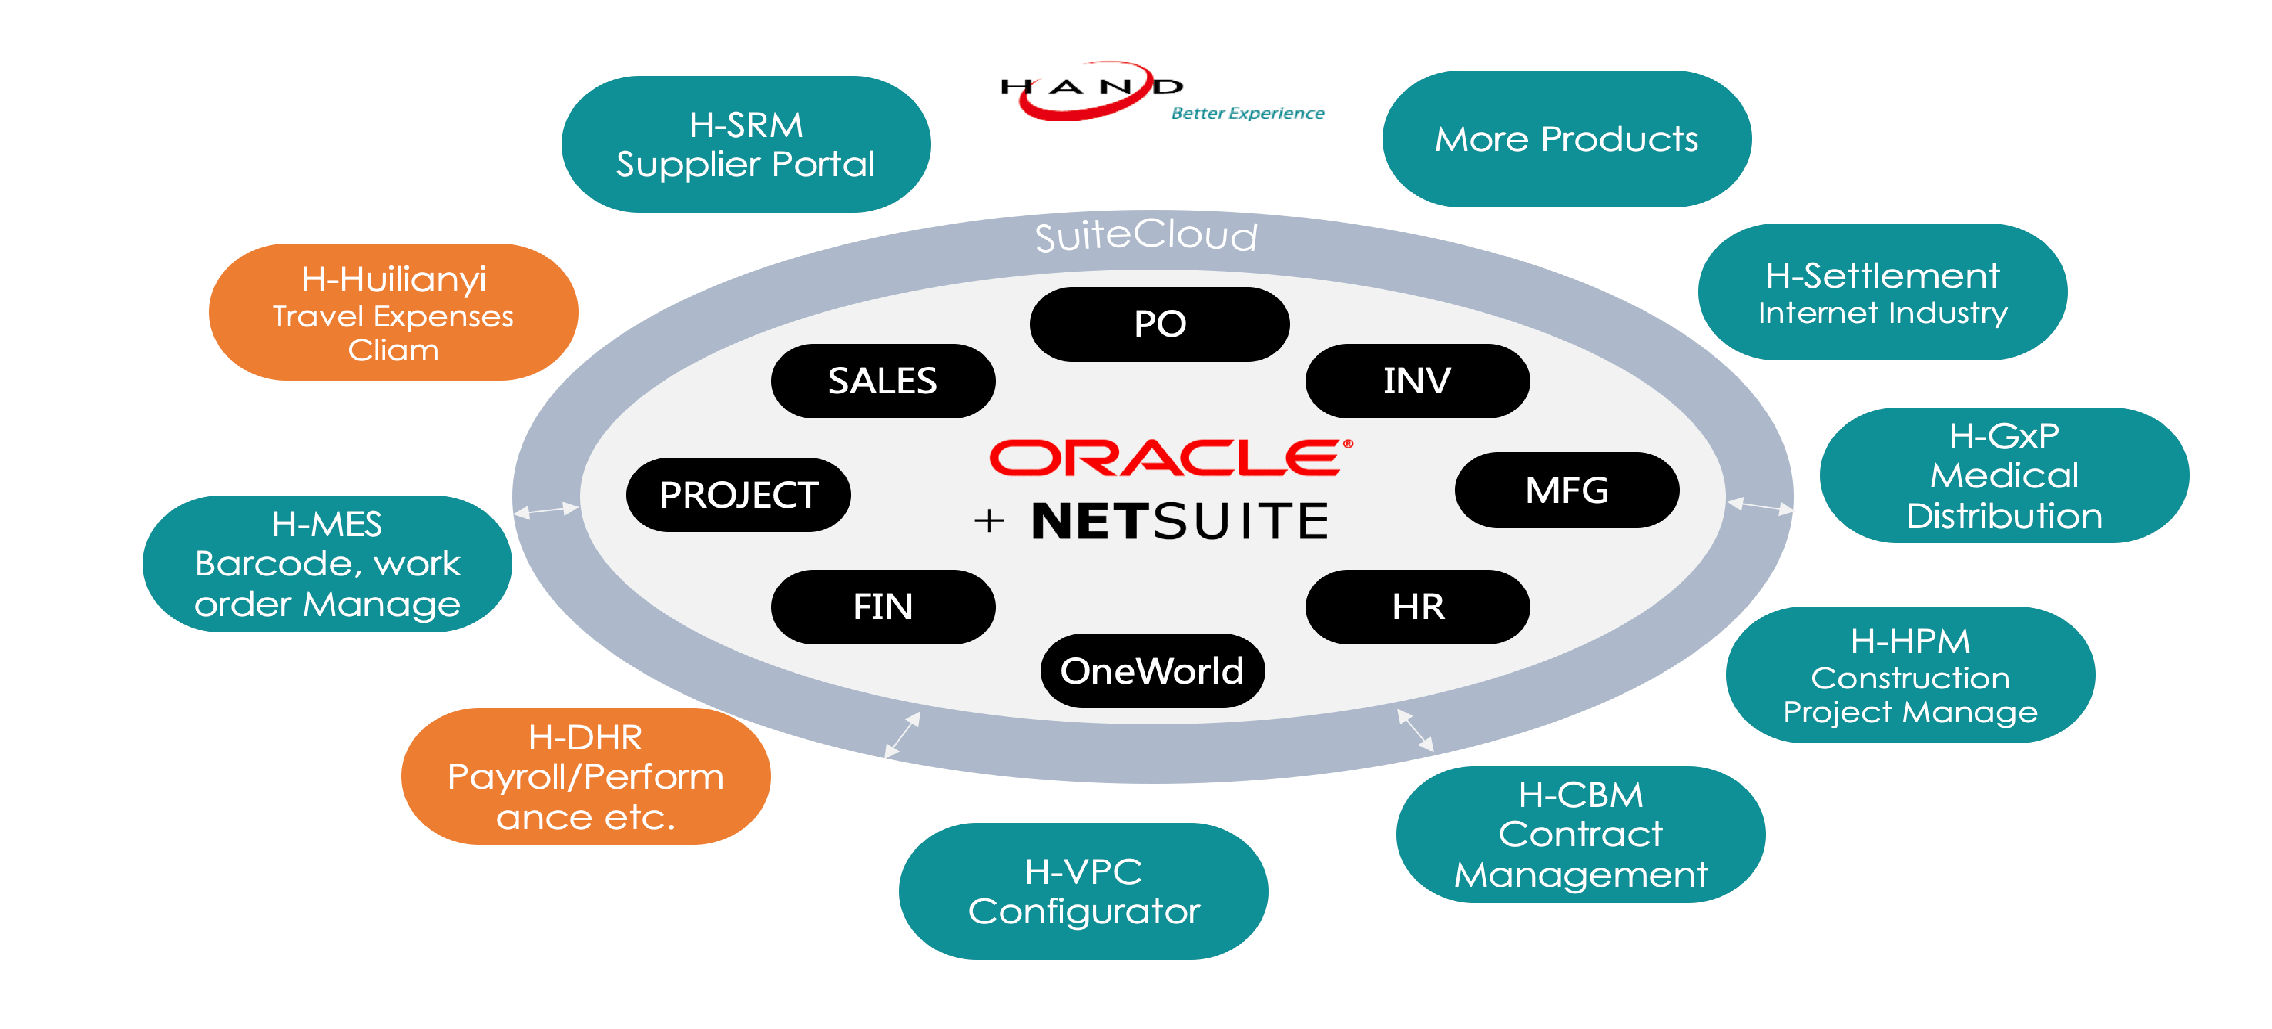 sdn-cooperation-netsuite